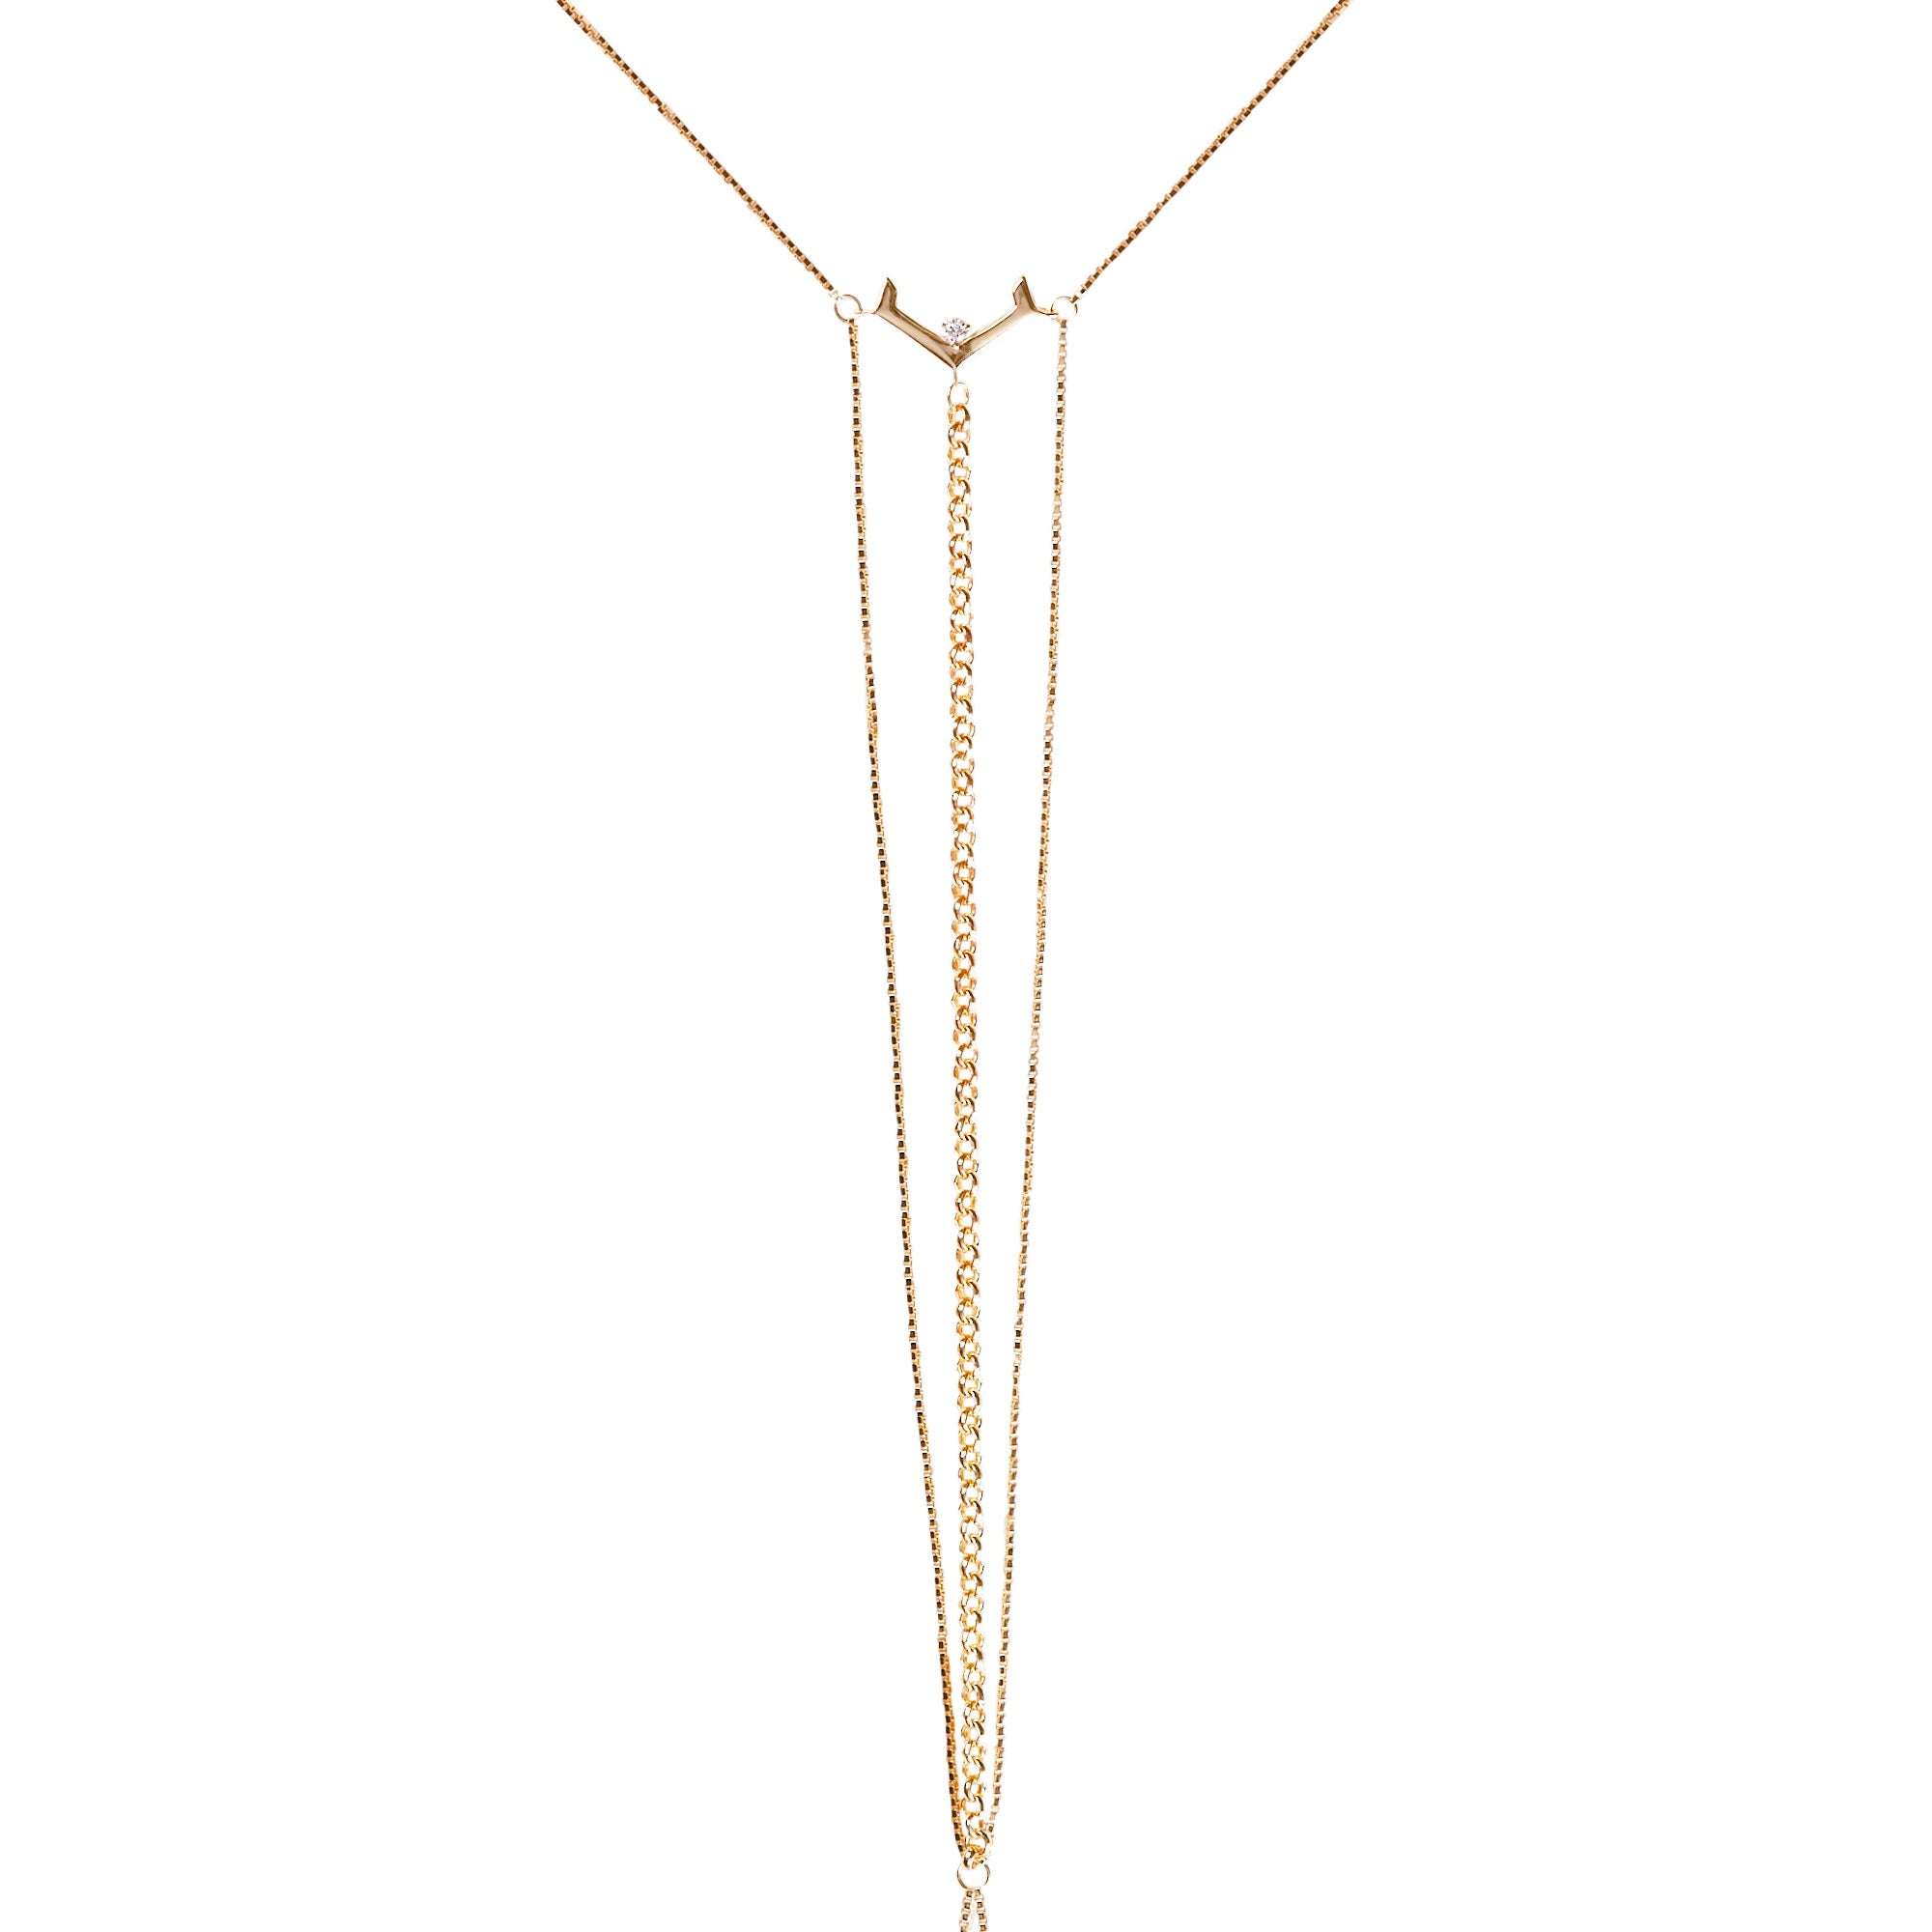 Interlude Bodychain Yellow Gold Vermeil + White Diamond